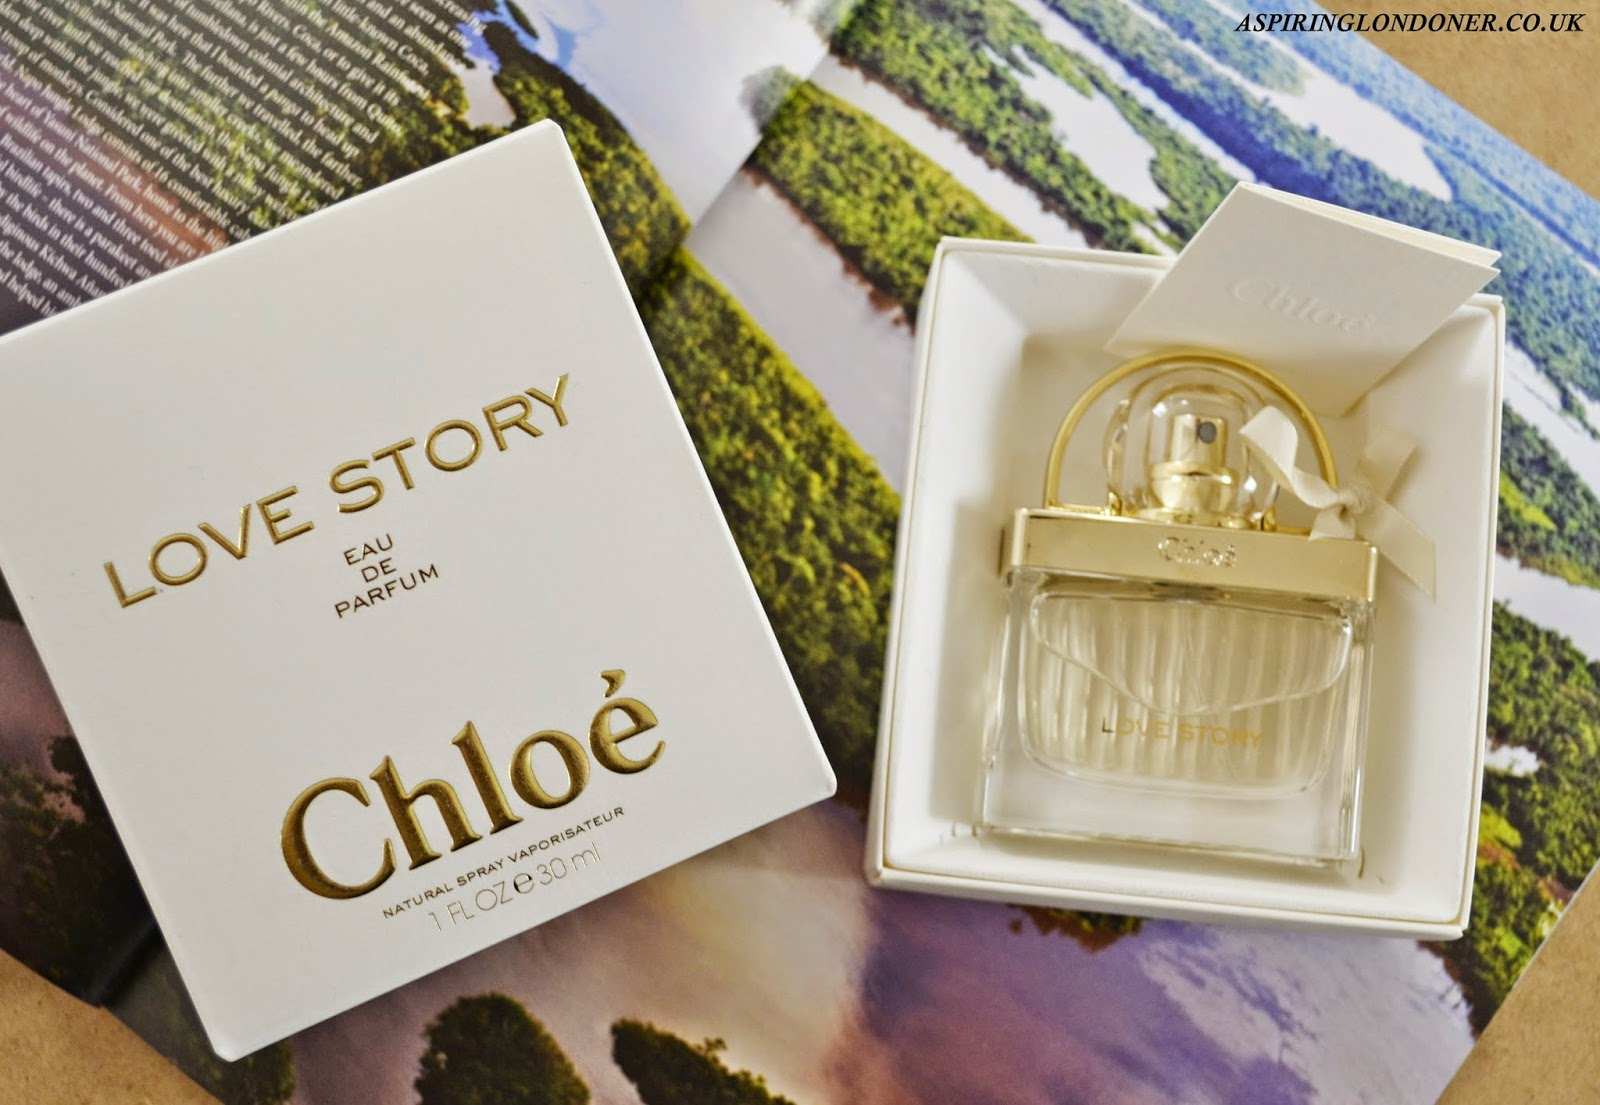 Love Story by Chloe Perfume Review - Aspiring Londoner